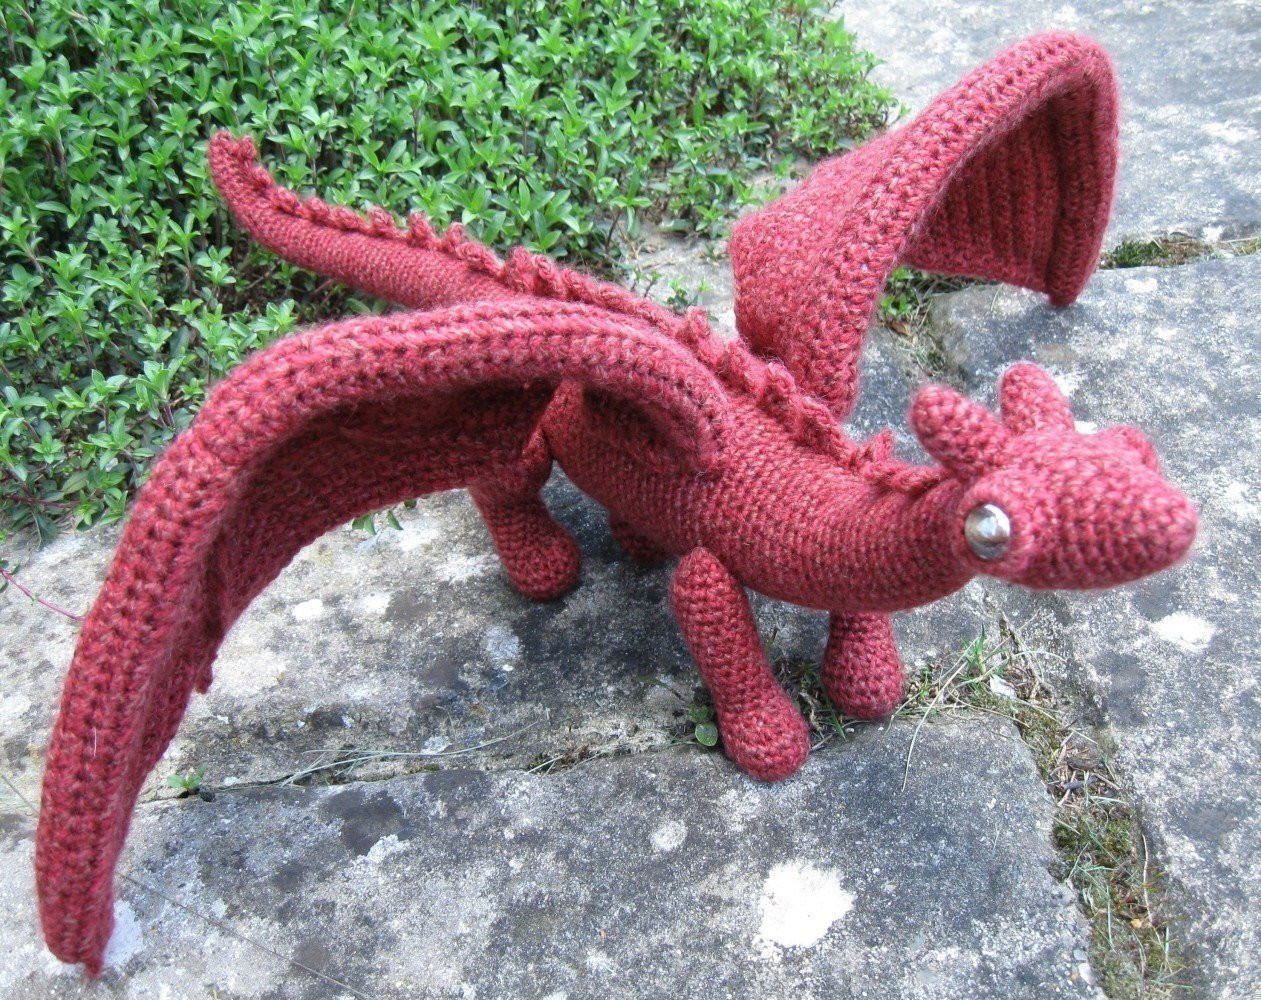 Inspirational Tecido Feltro E Croche Binacao Perfeita – Monstrinhos Crochet Dragon Pattern Of Brilliant 50 Pictures Crochet Dragon Pattern